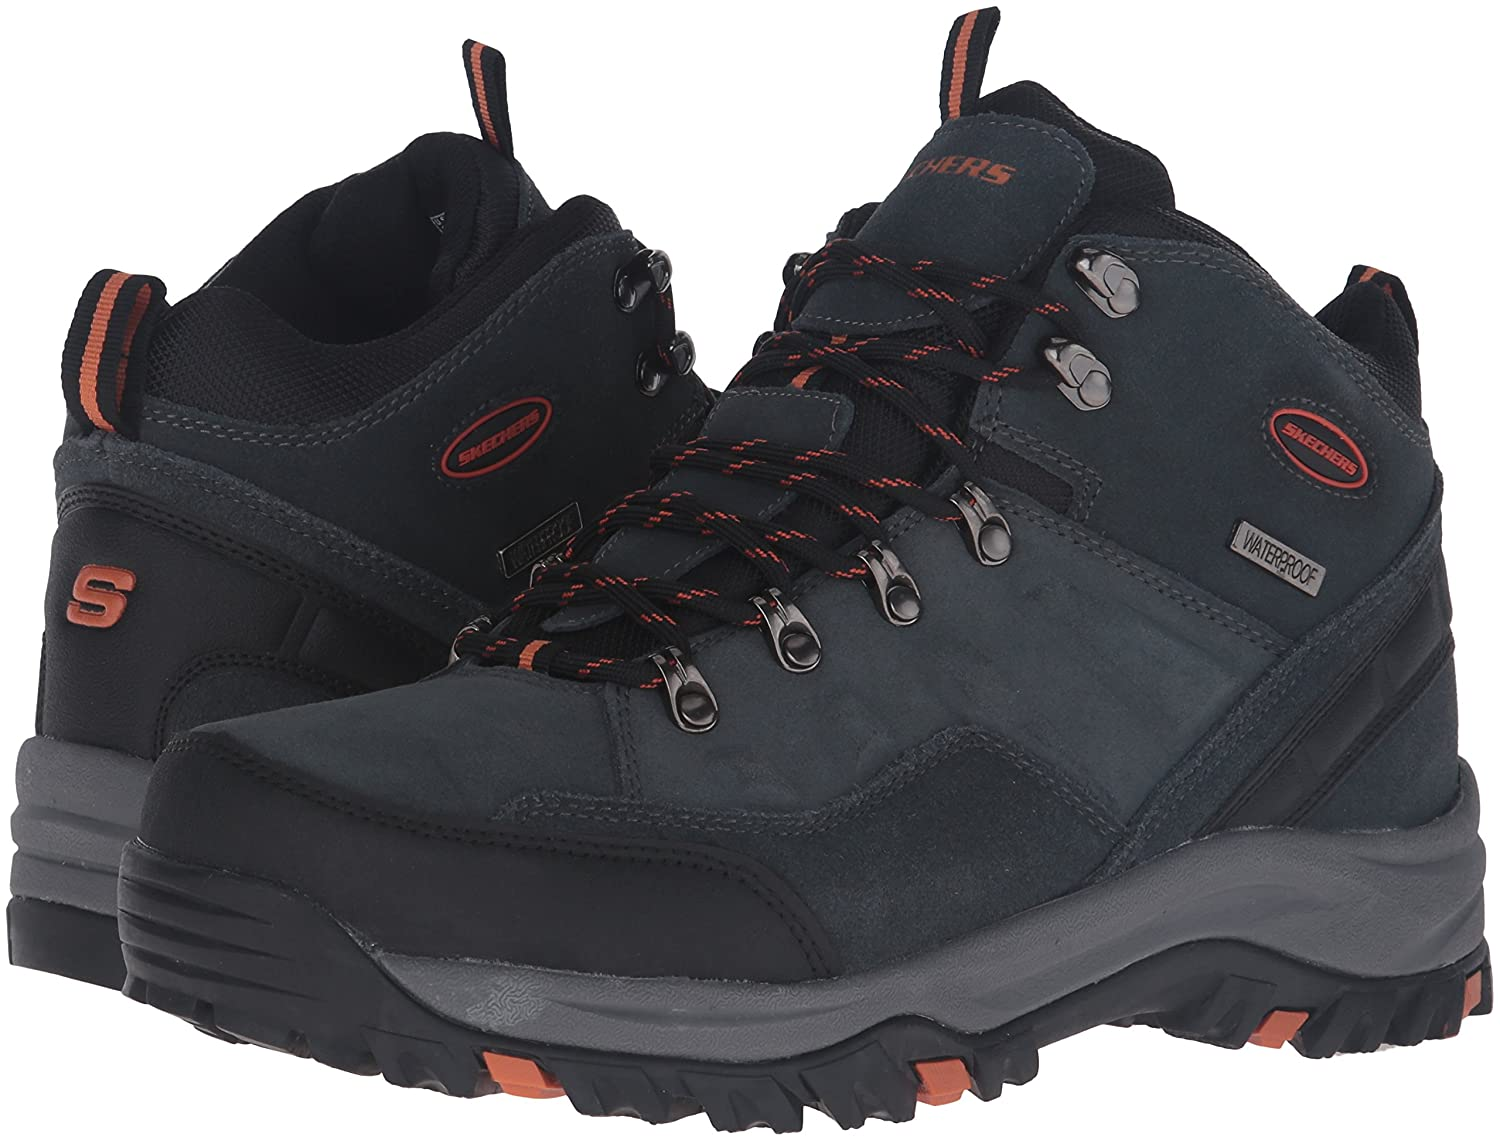 73e38d18ab3 Skechers Men's Relment Pelmo Chukka Boot: Amazon.co.uk: Shoes & Bags